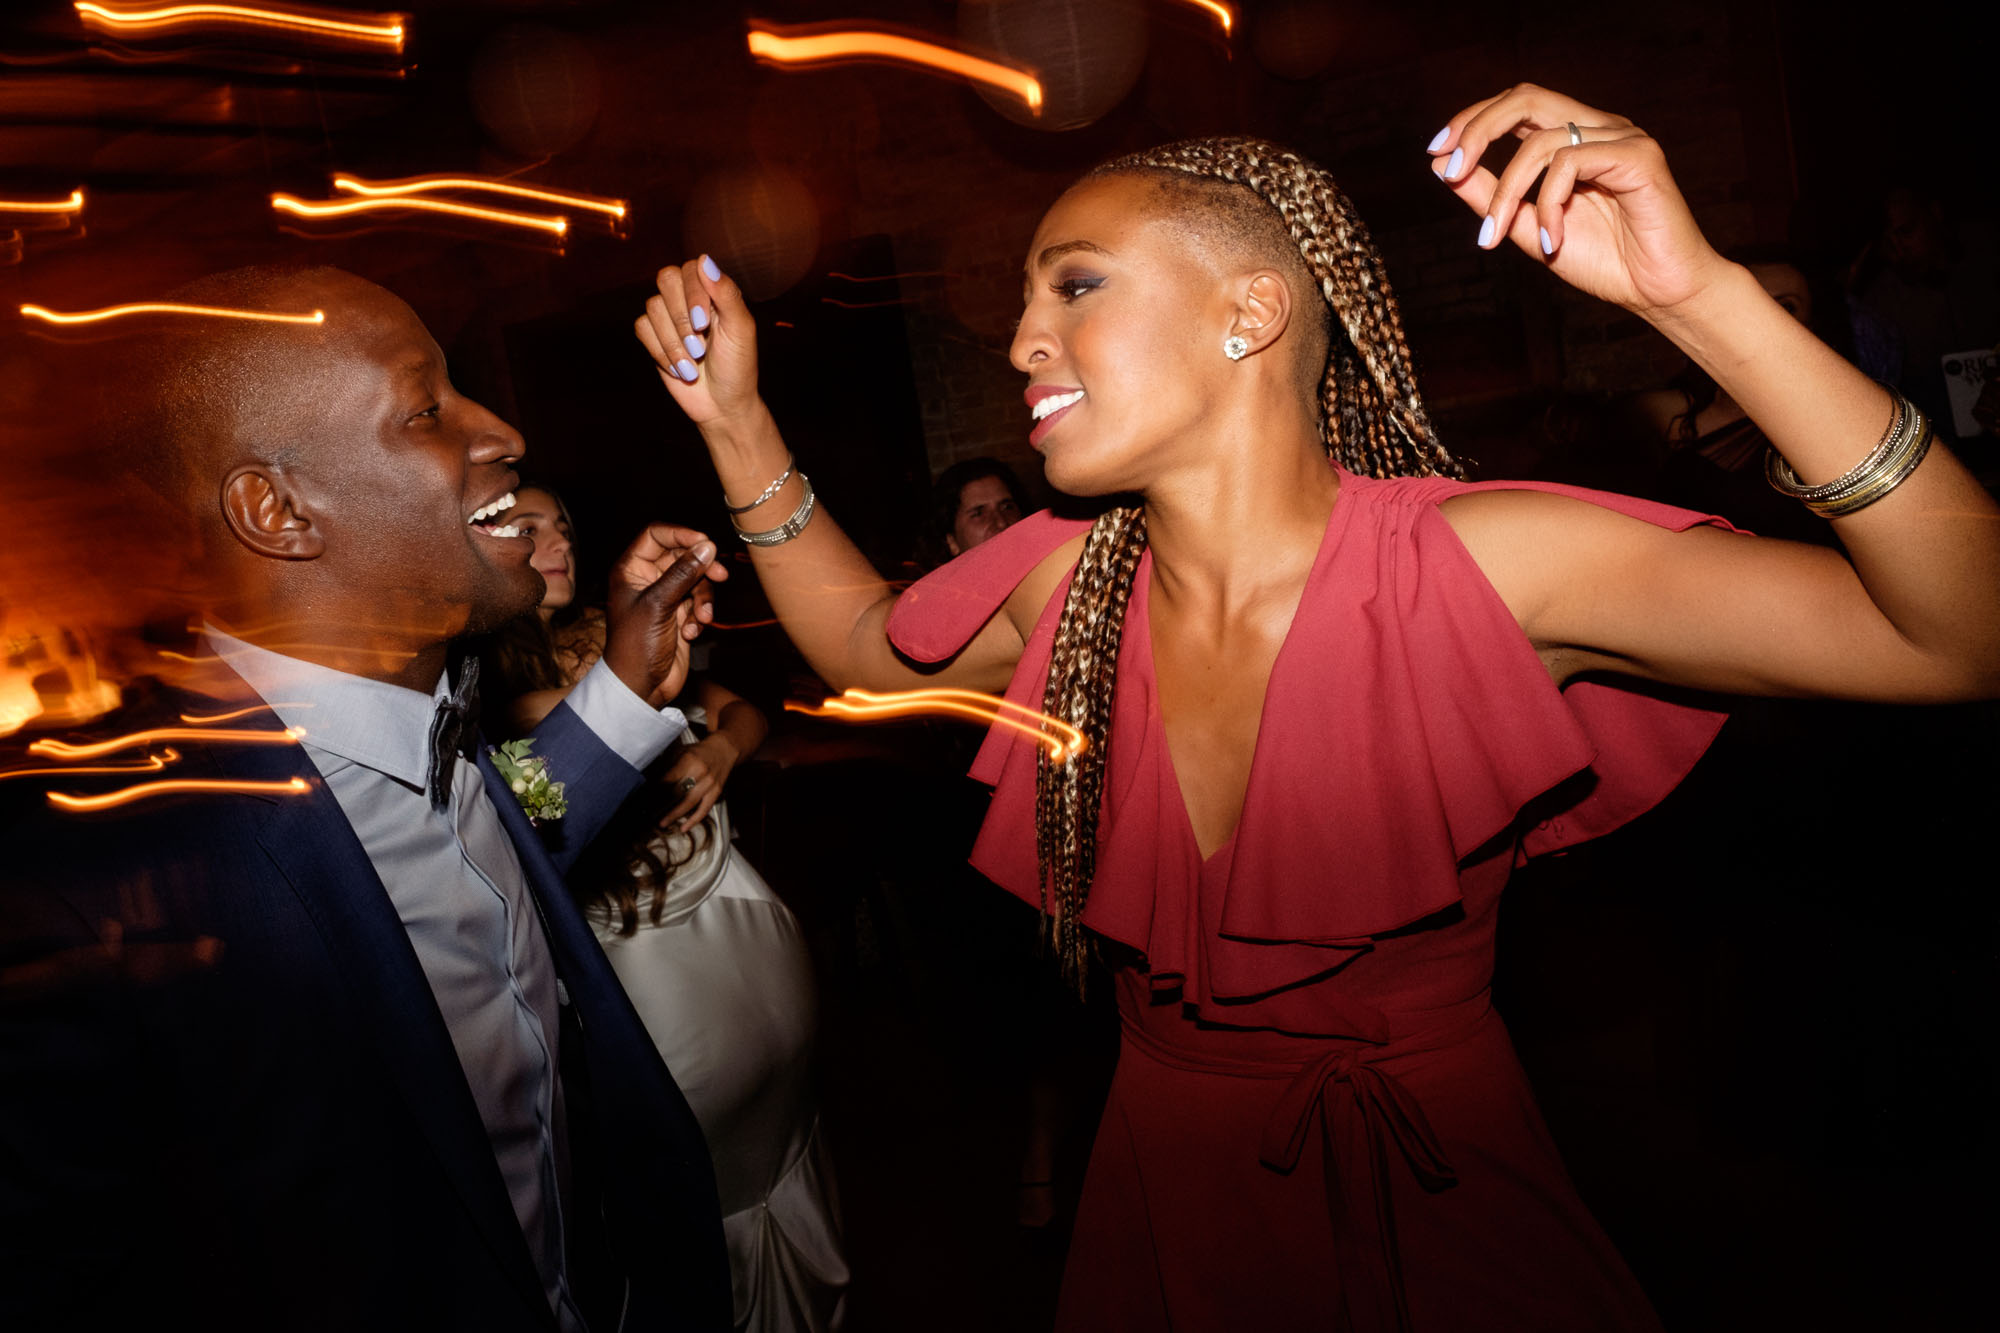 Guests dance the night away during the wedding reception at Archeo.